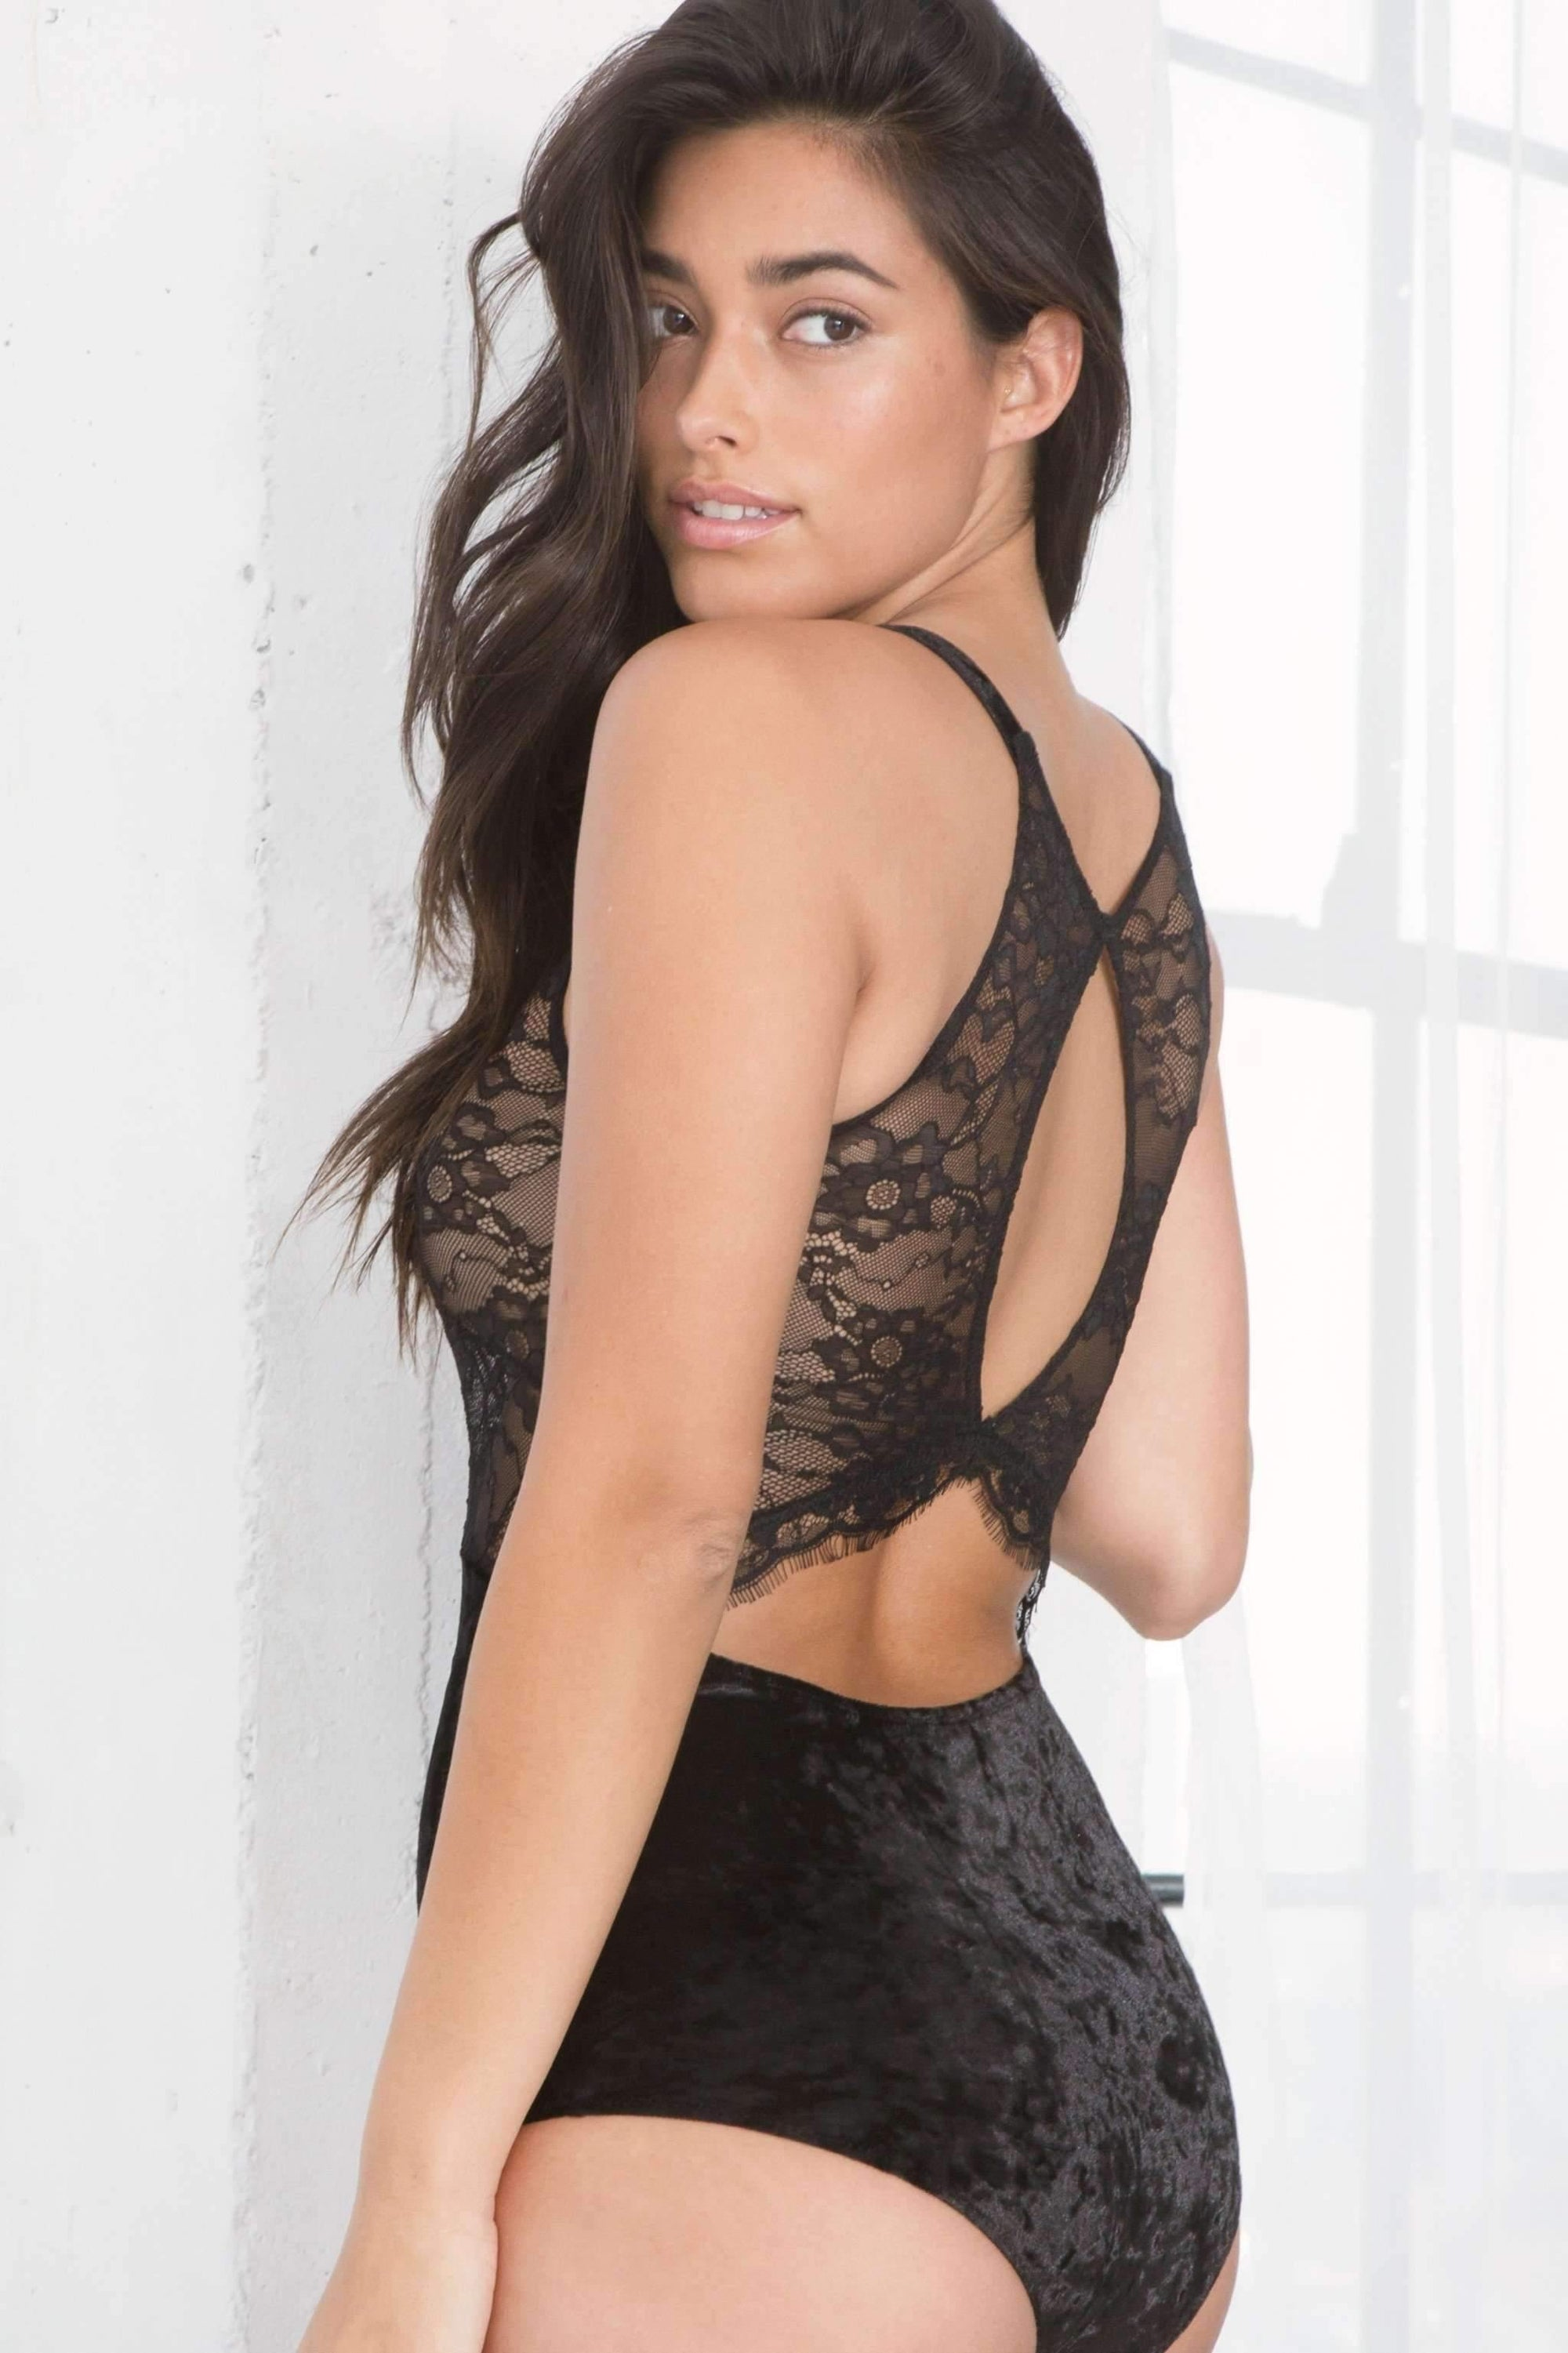 Noelle Velvet & Lace Bodysuit-Bras-Honeydew Intimates-Black-Small-Honeydew Intimates